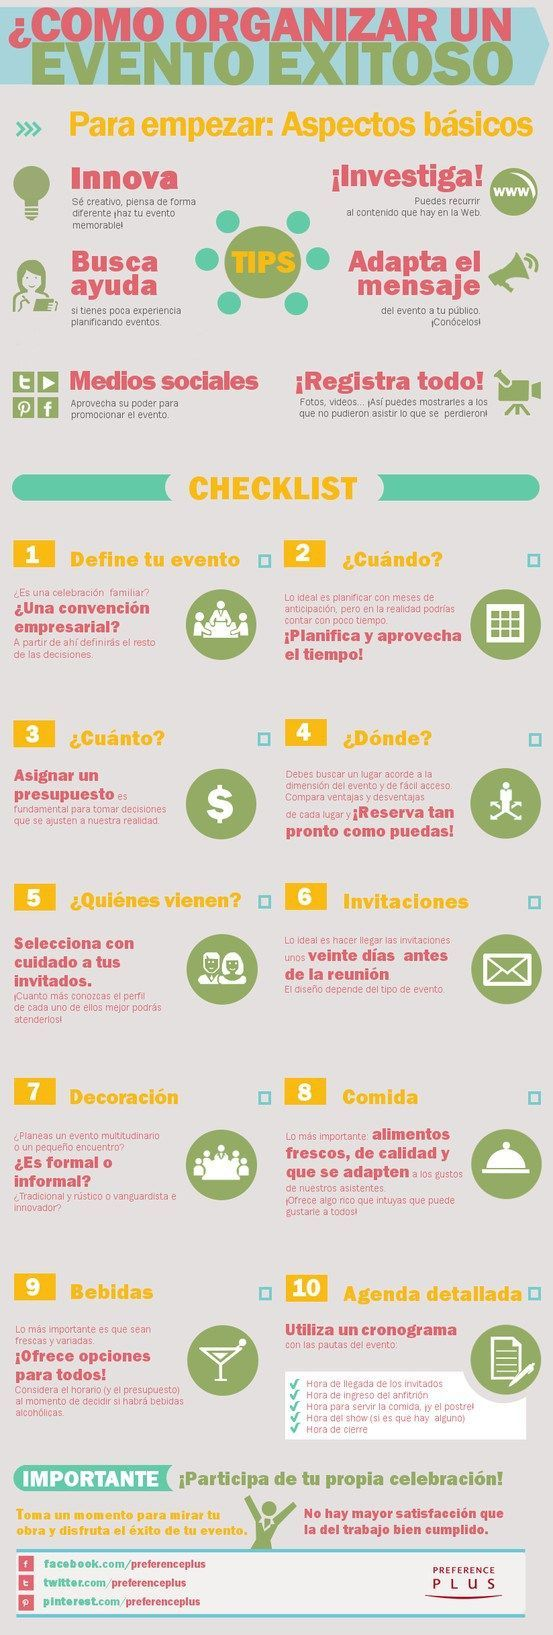 Cómo organizar un evento de éxito #infografia #infographic #marketing